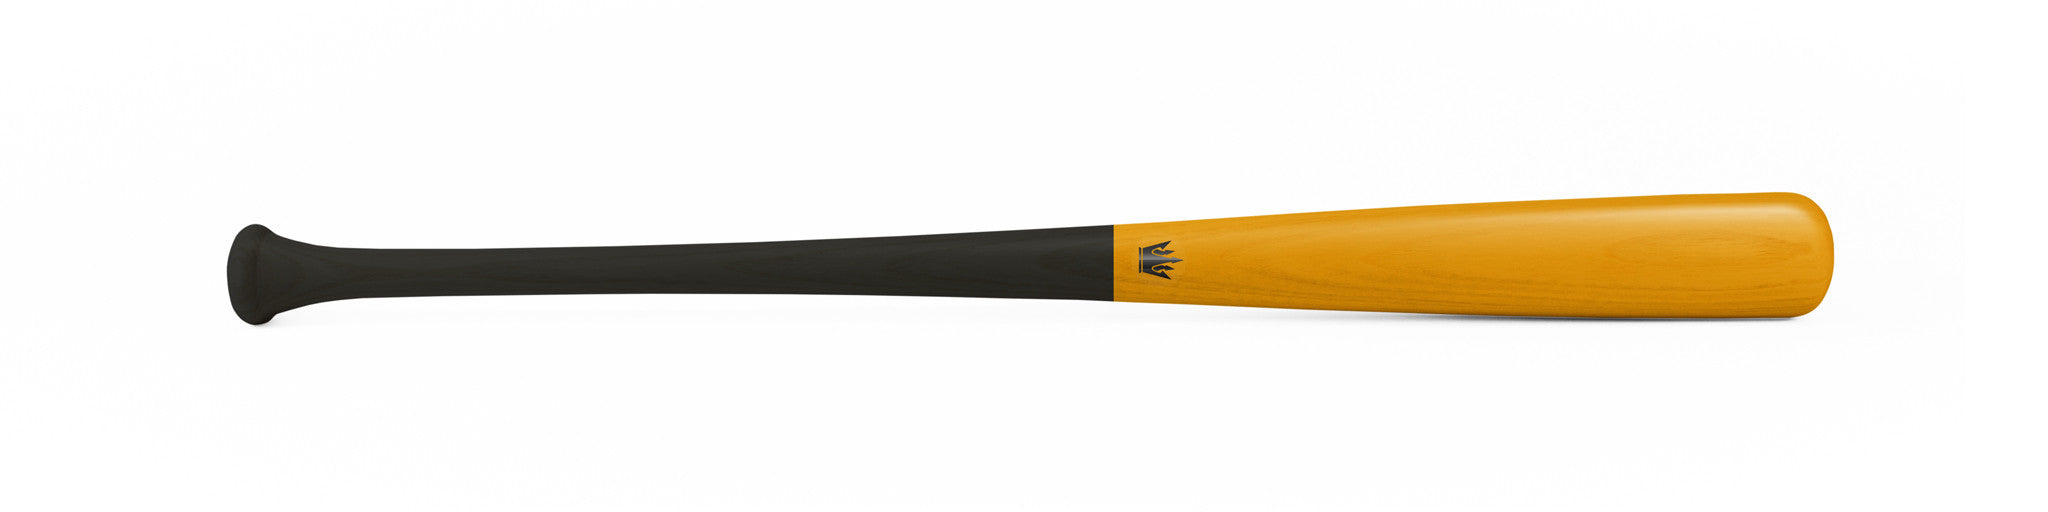 Wood bat - Ash model Y271 Black Gold - 27